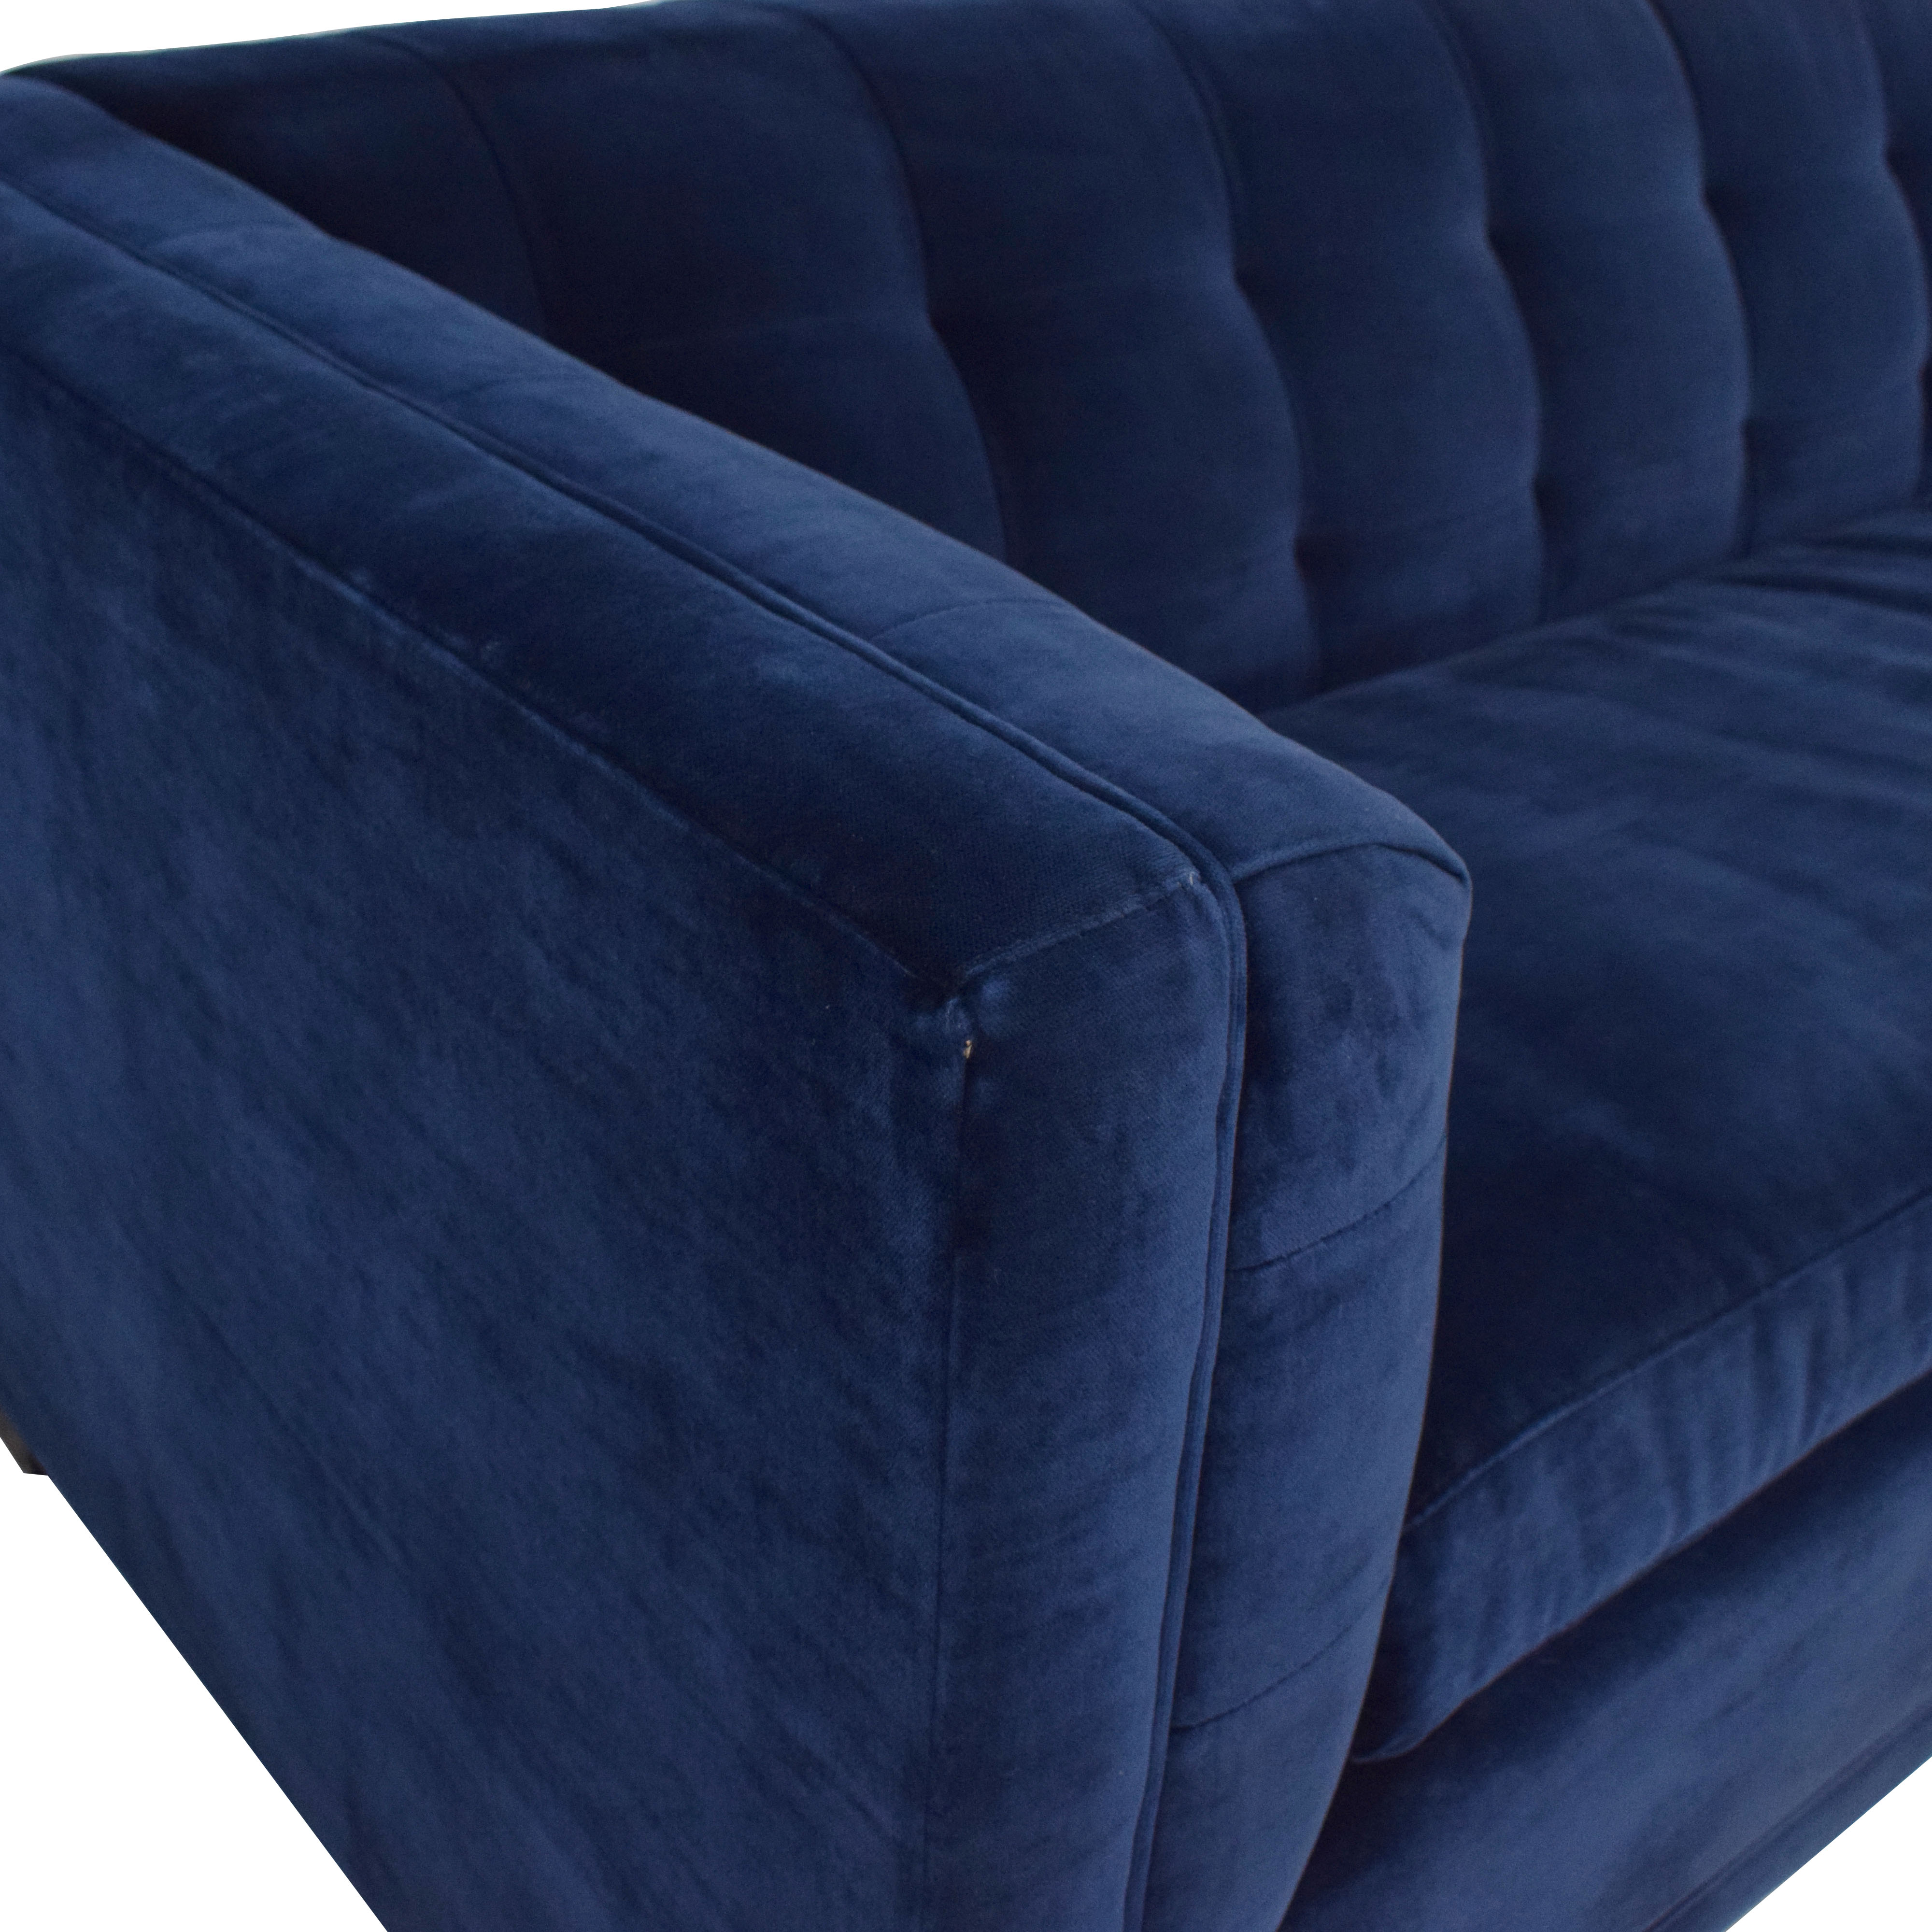 buy Crate & Barrel Tufted Queen Sleeper Sofa Crate & Barrel